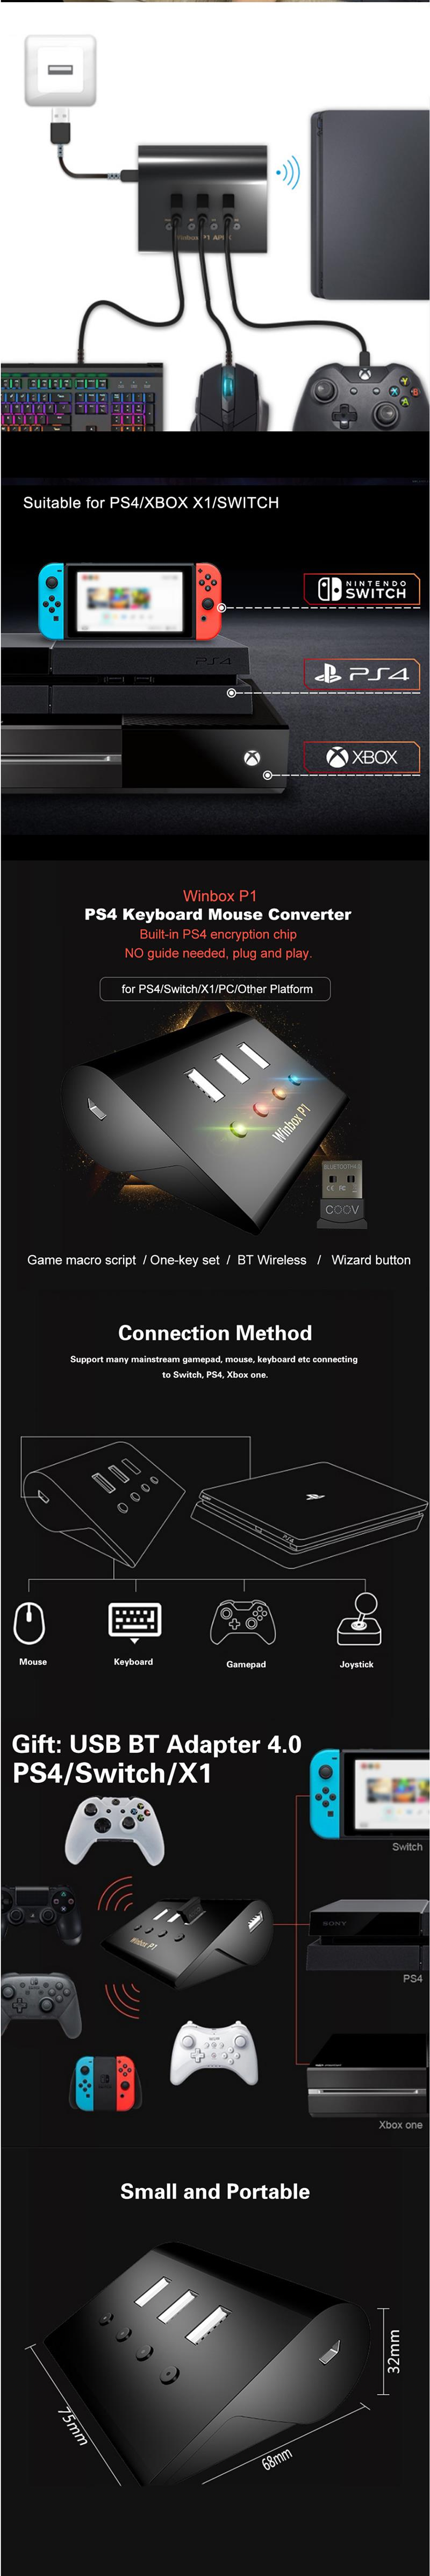 Winbox P1 Pro Keyboard Mouse Converter Adapter Game Console for Playstation 4 for Nintendo Switch X1 PC 14